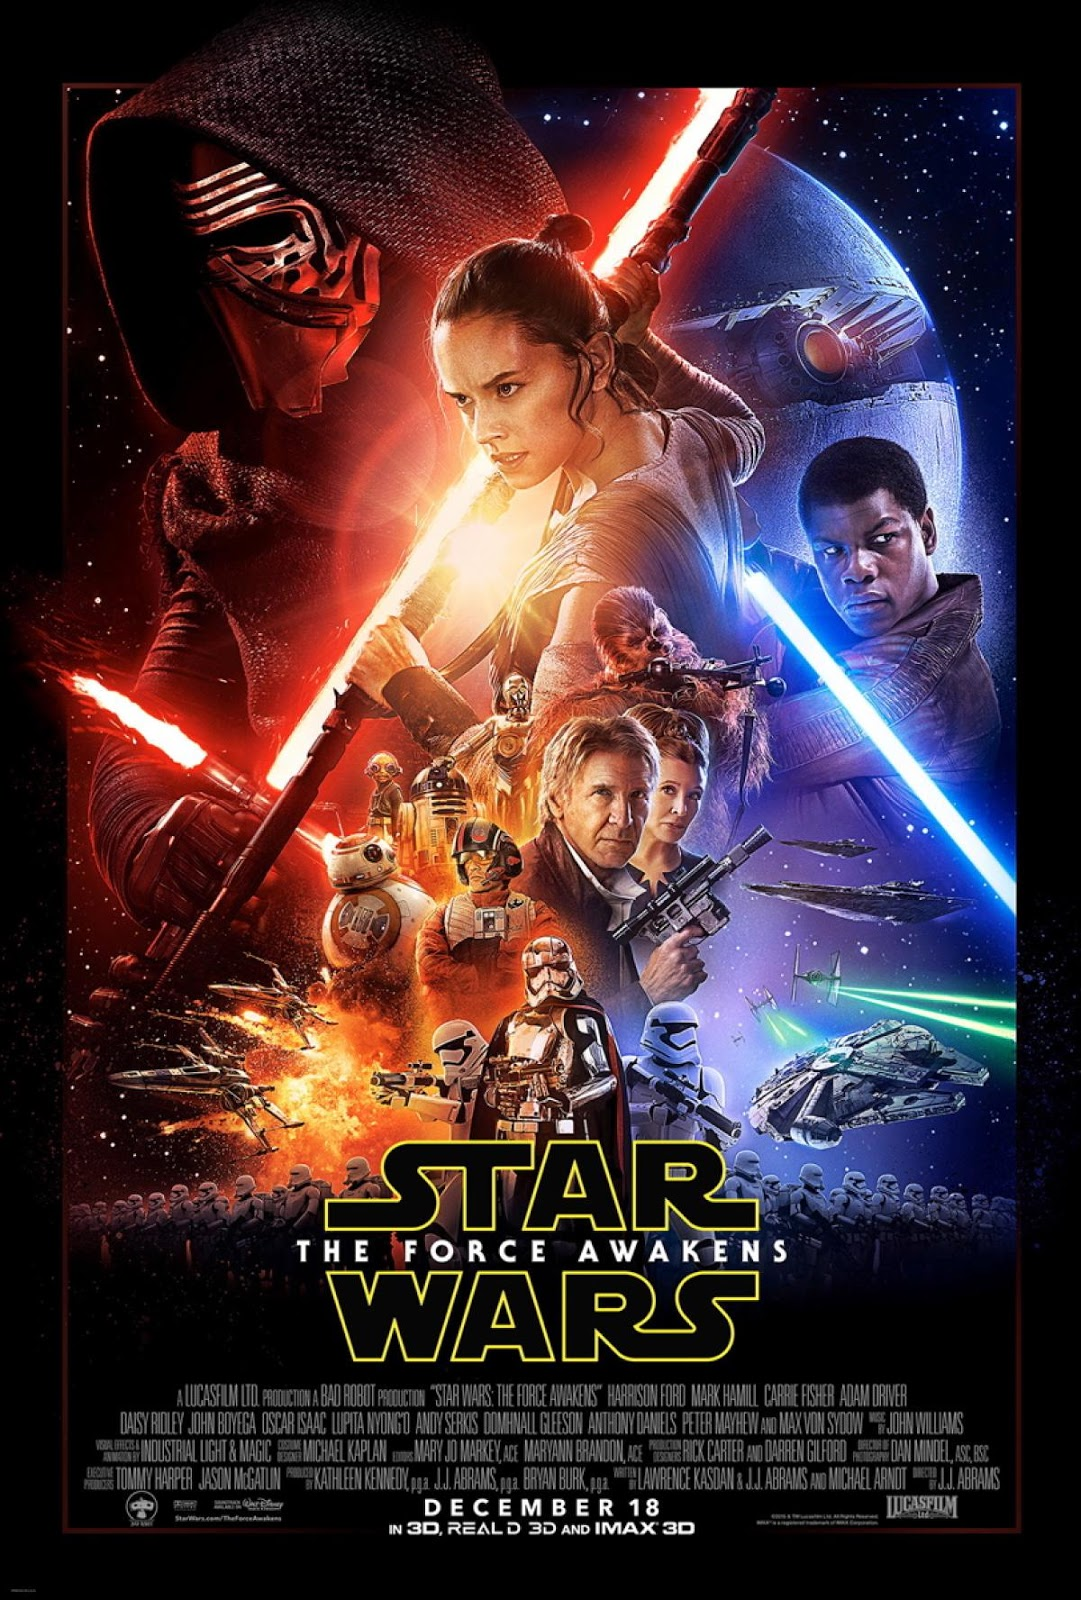 Star Wars: Episode VII - The Force Awakens (2015) ταινιες online seires xrysoi greek subs